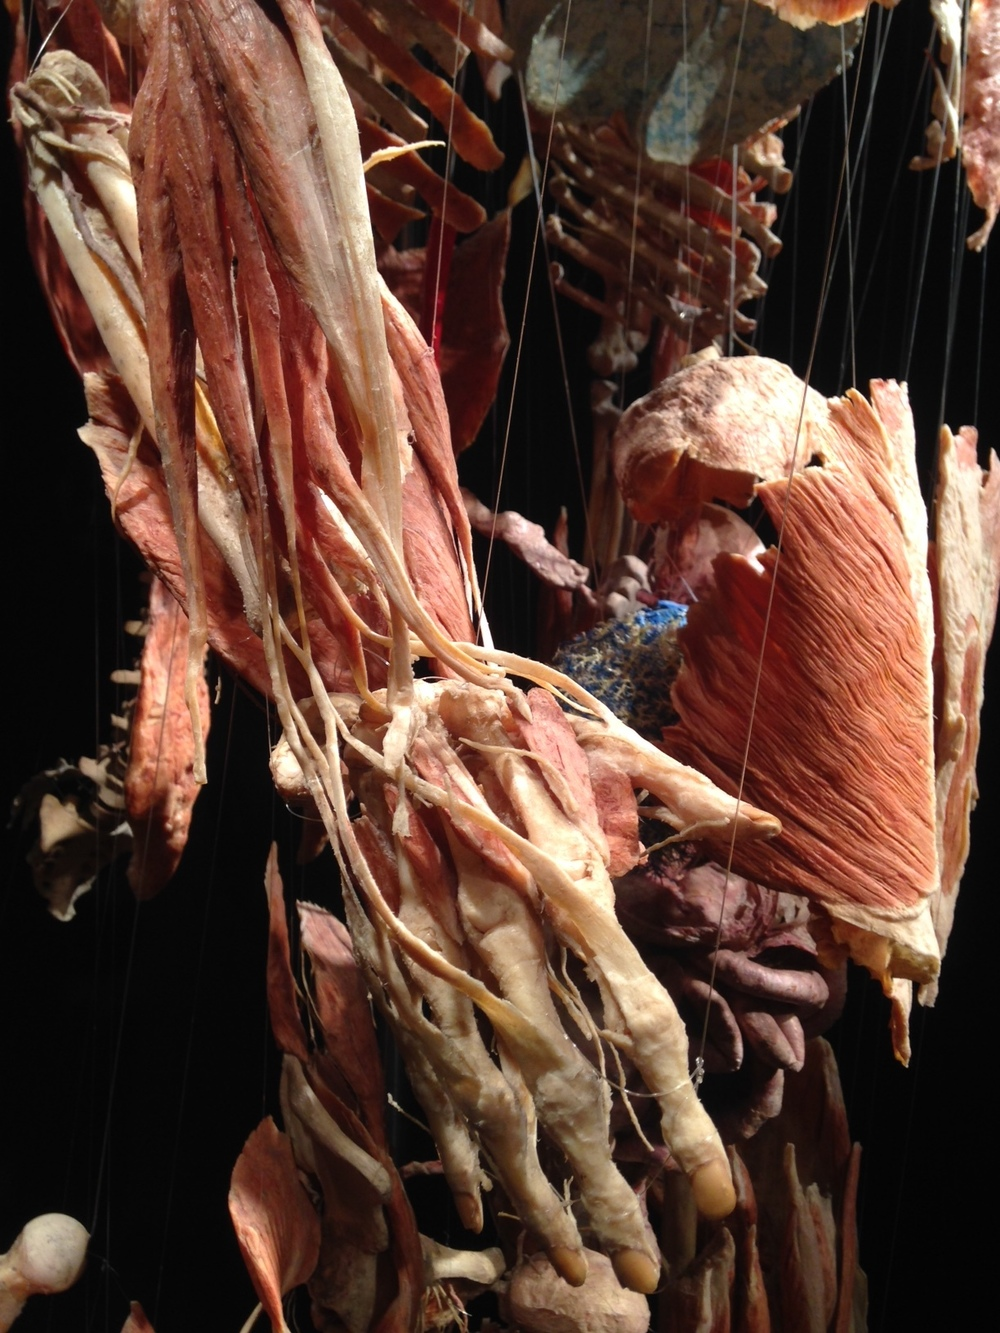 This close up further documents the astounding/mindboggling complexity and fragility of the human body.